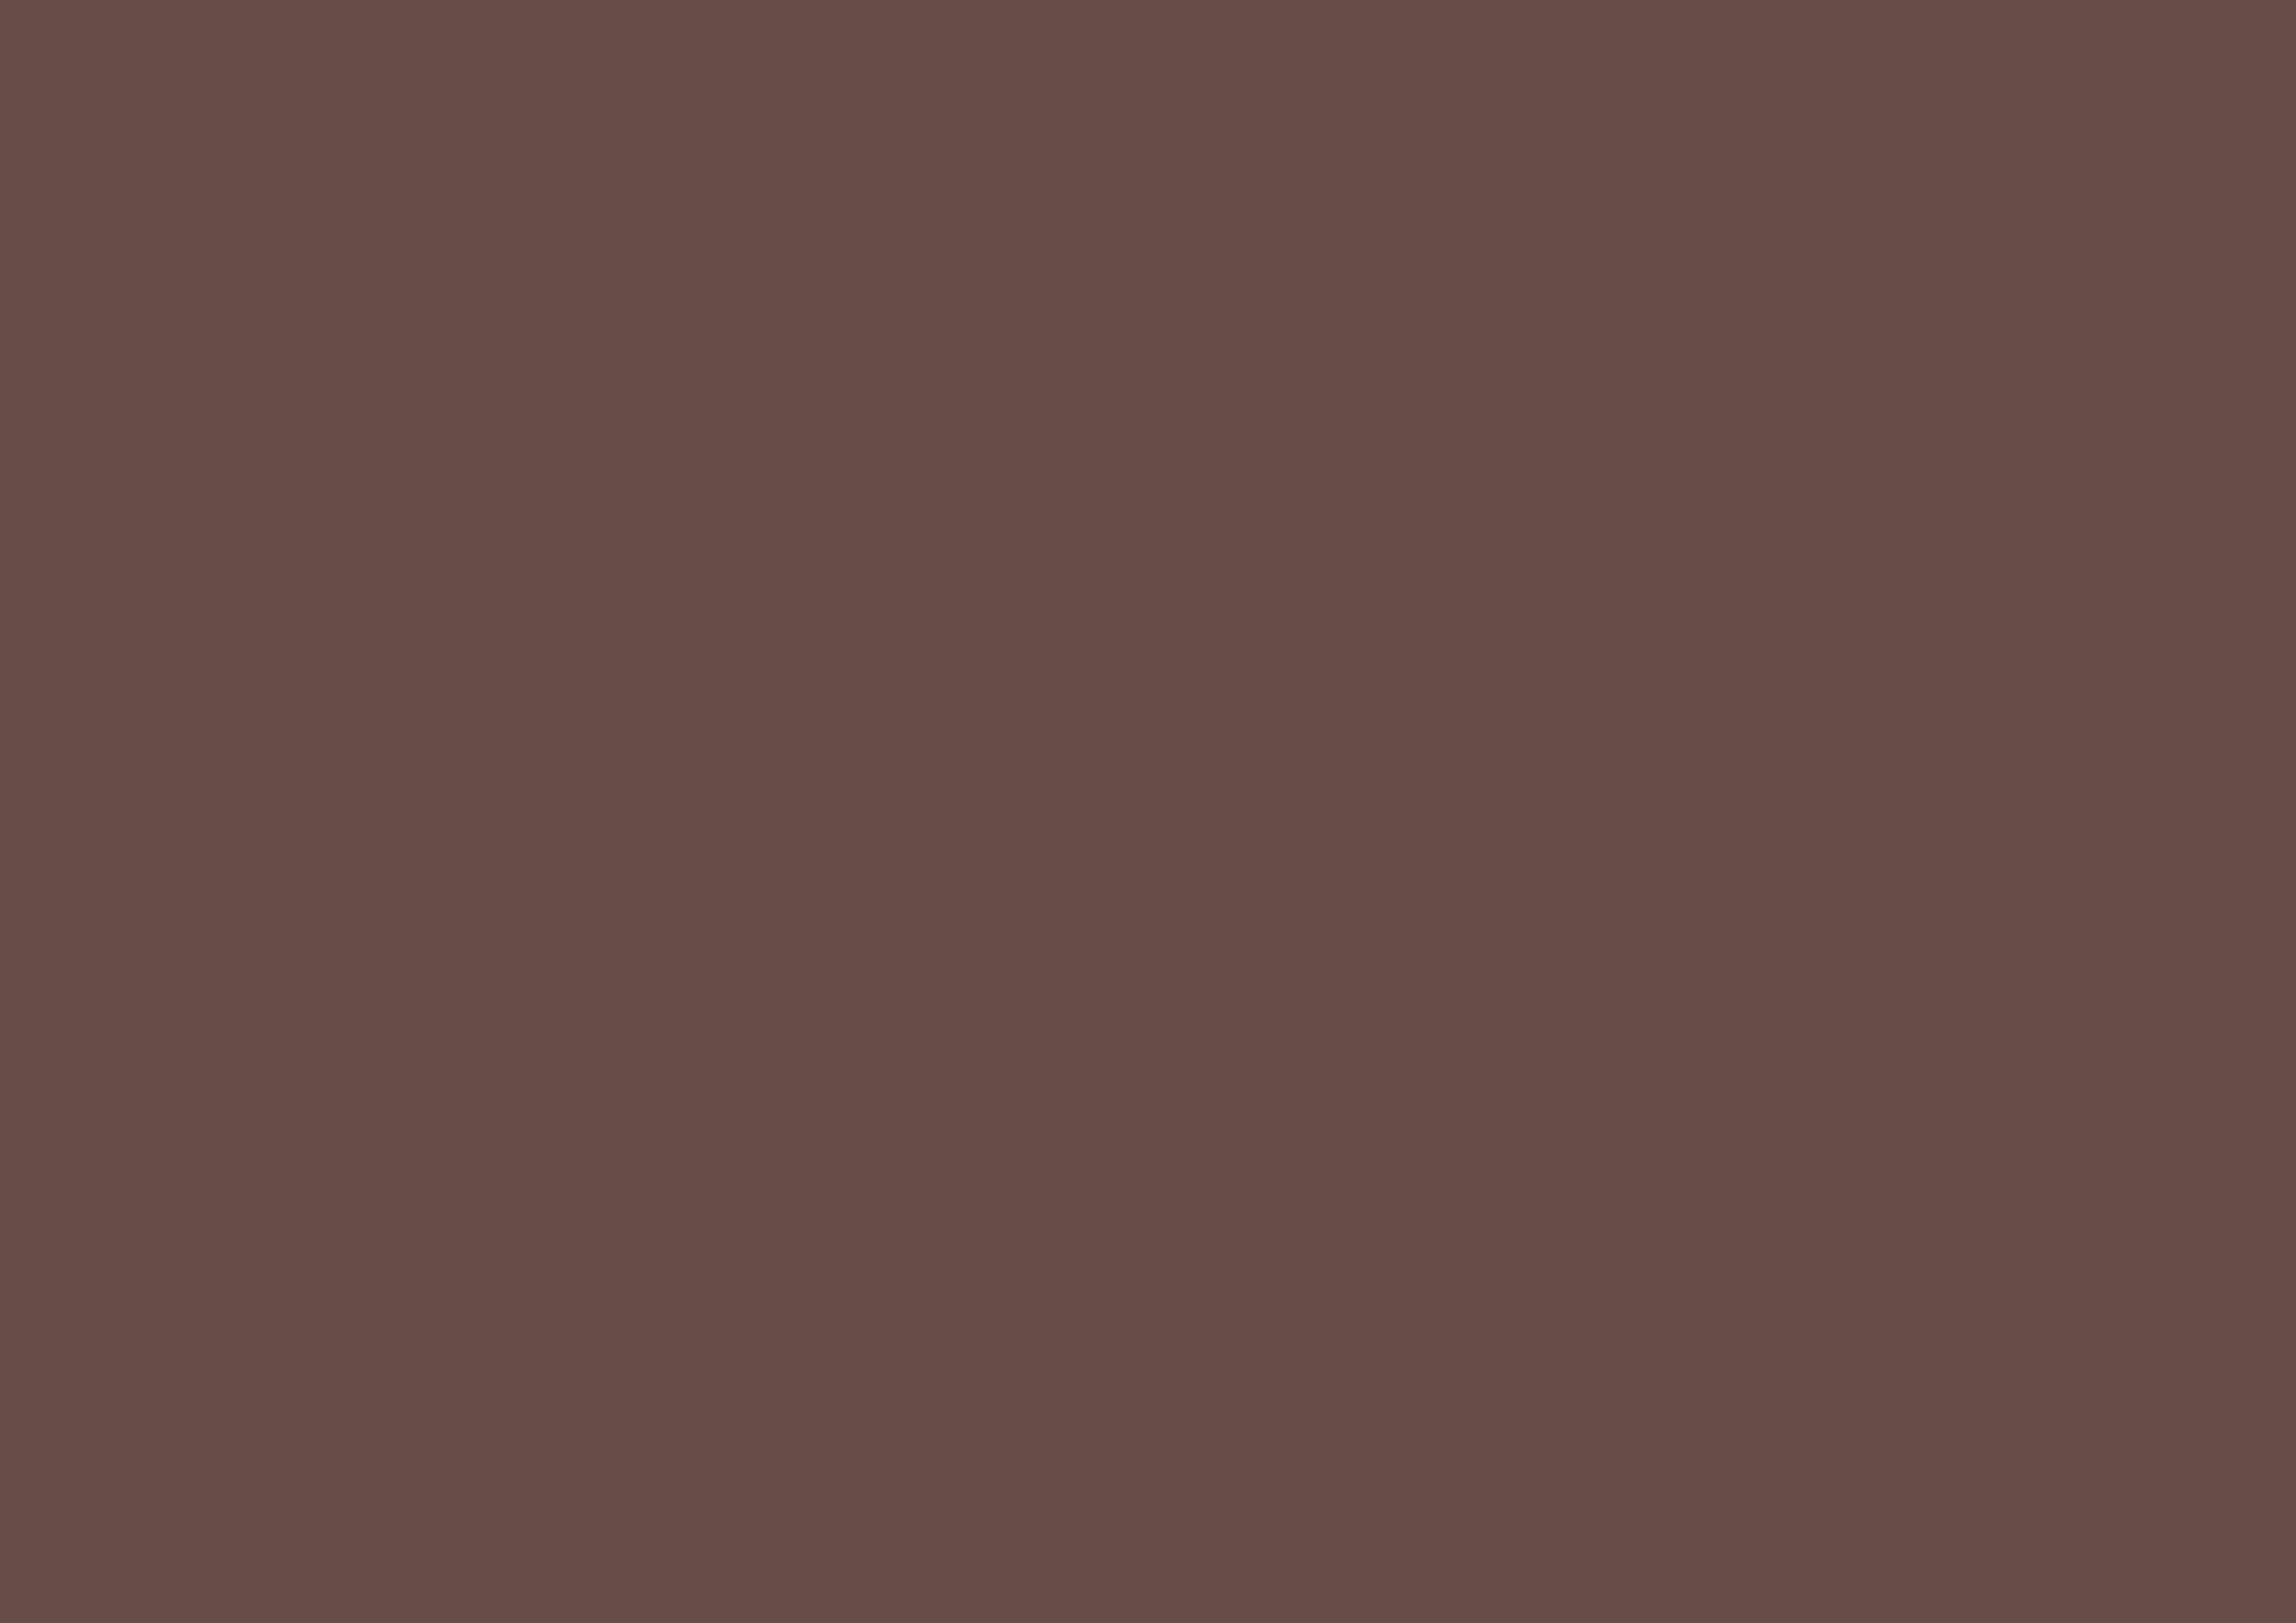 3508x2480 Medium Taupe Solid Color Background